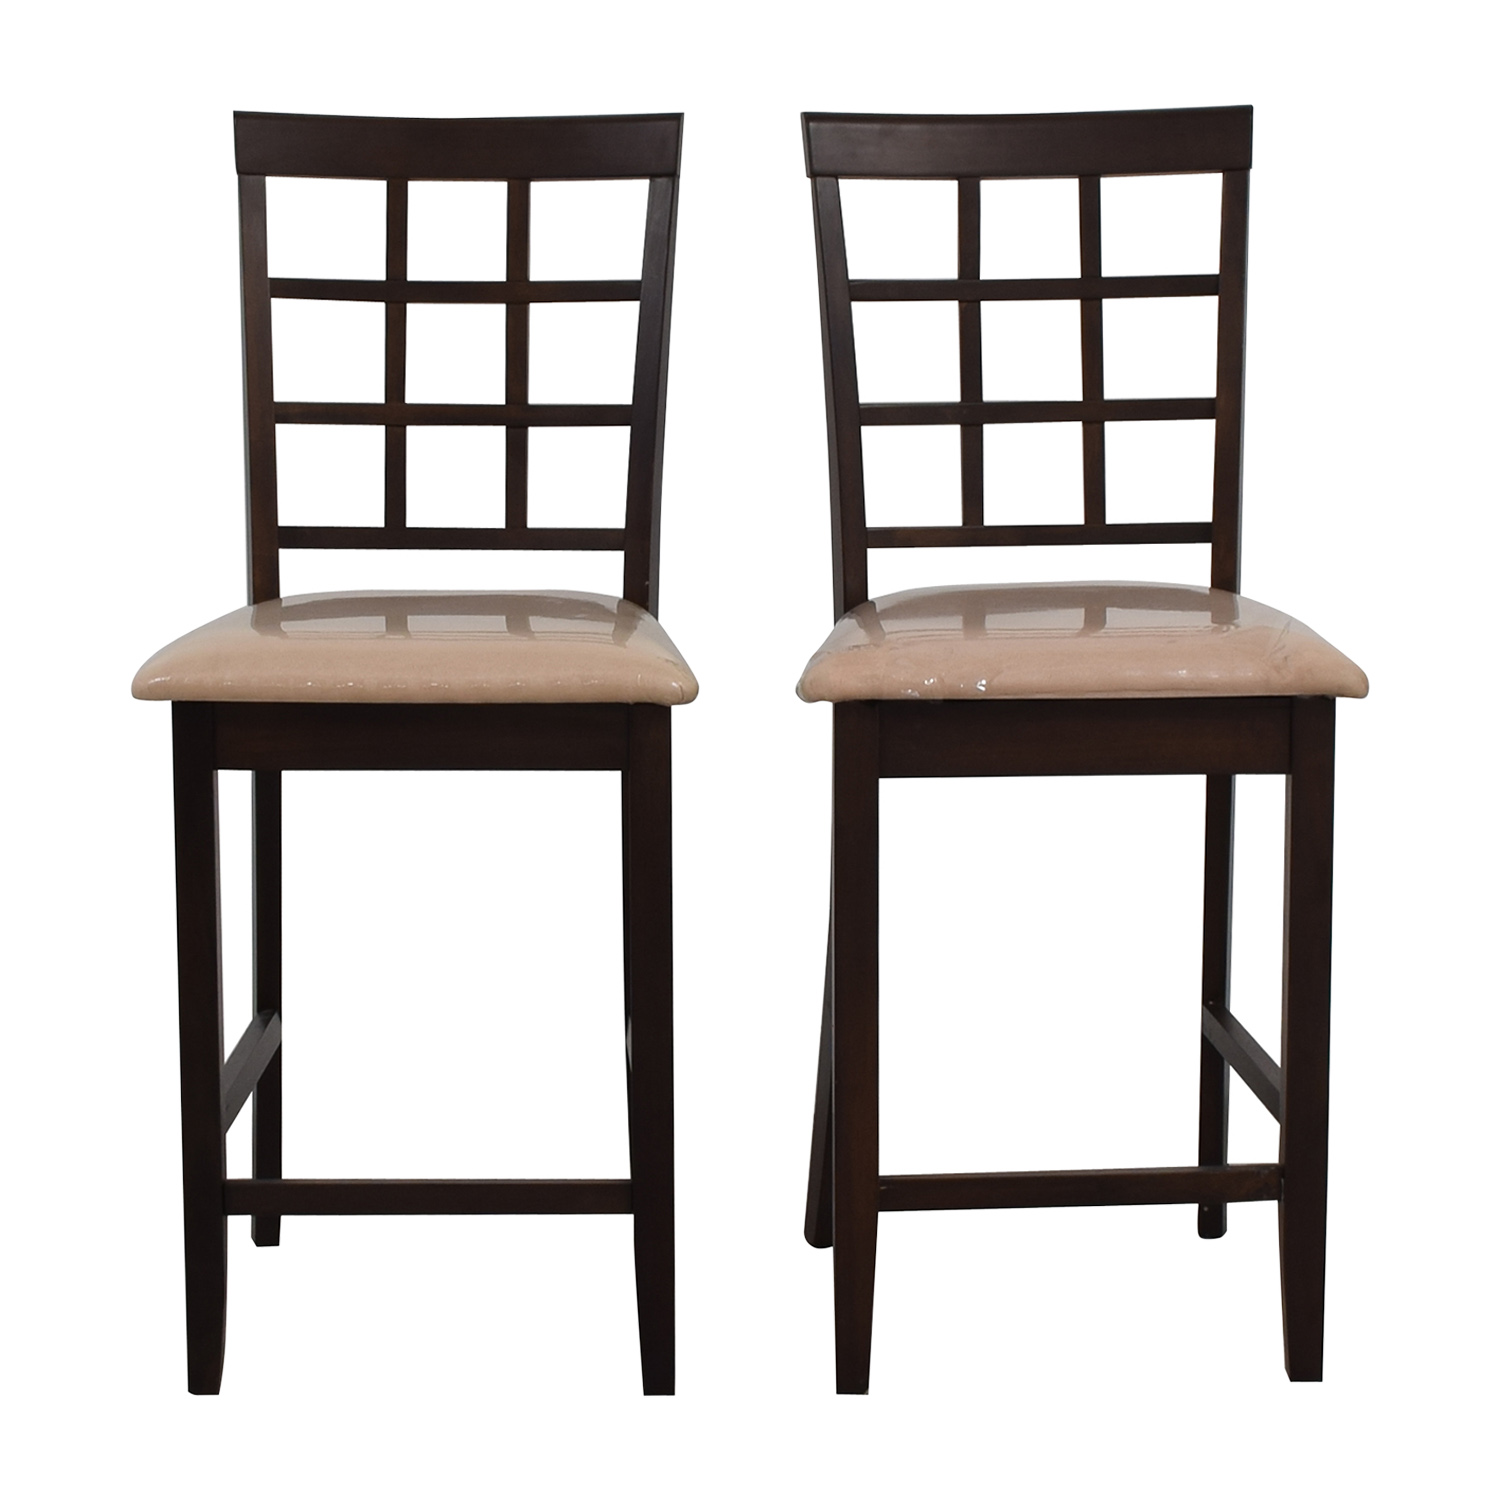 Cappuccino Counter Height Chairs on sale